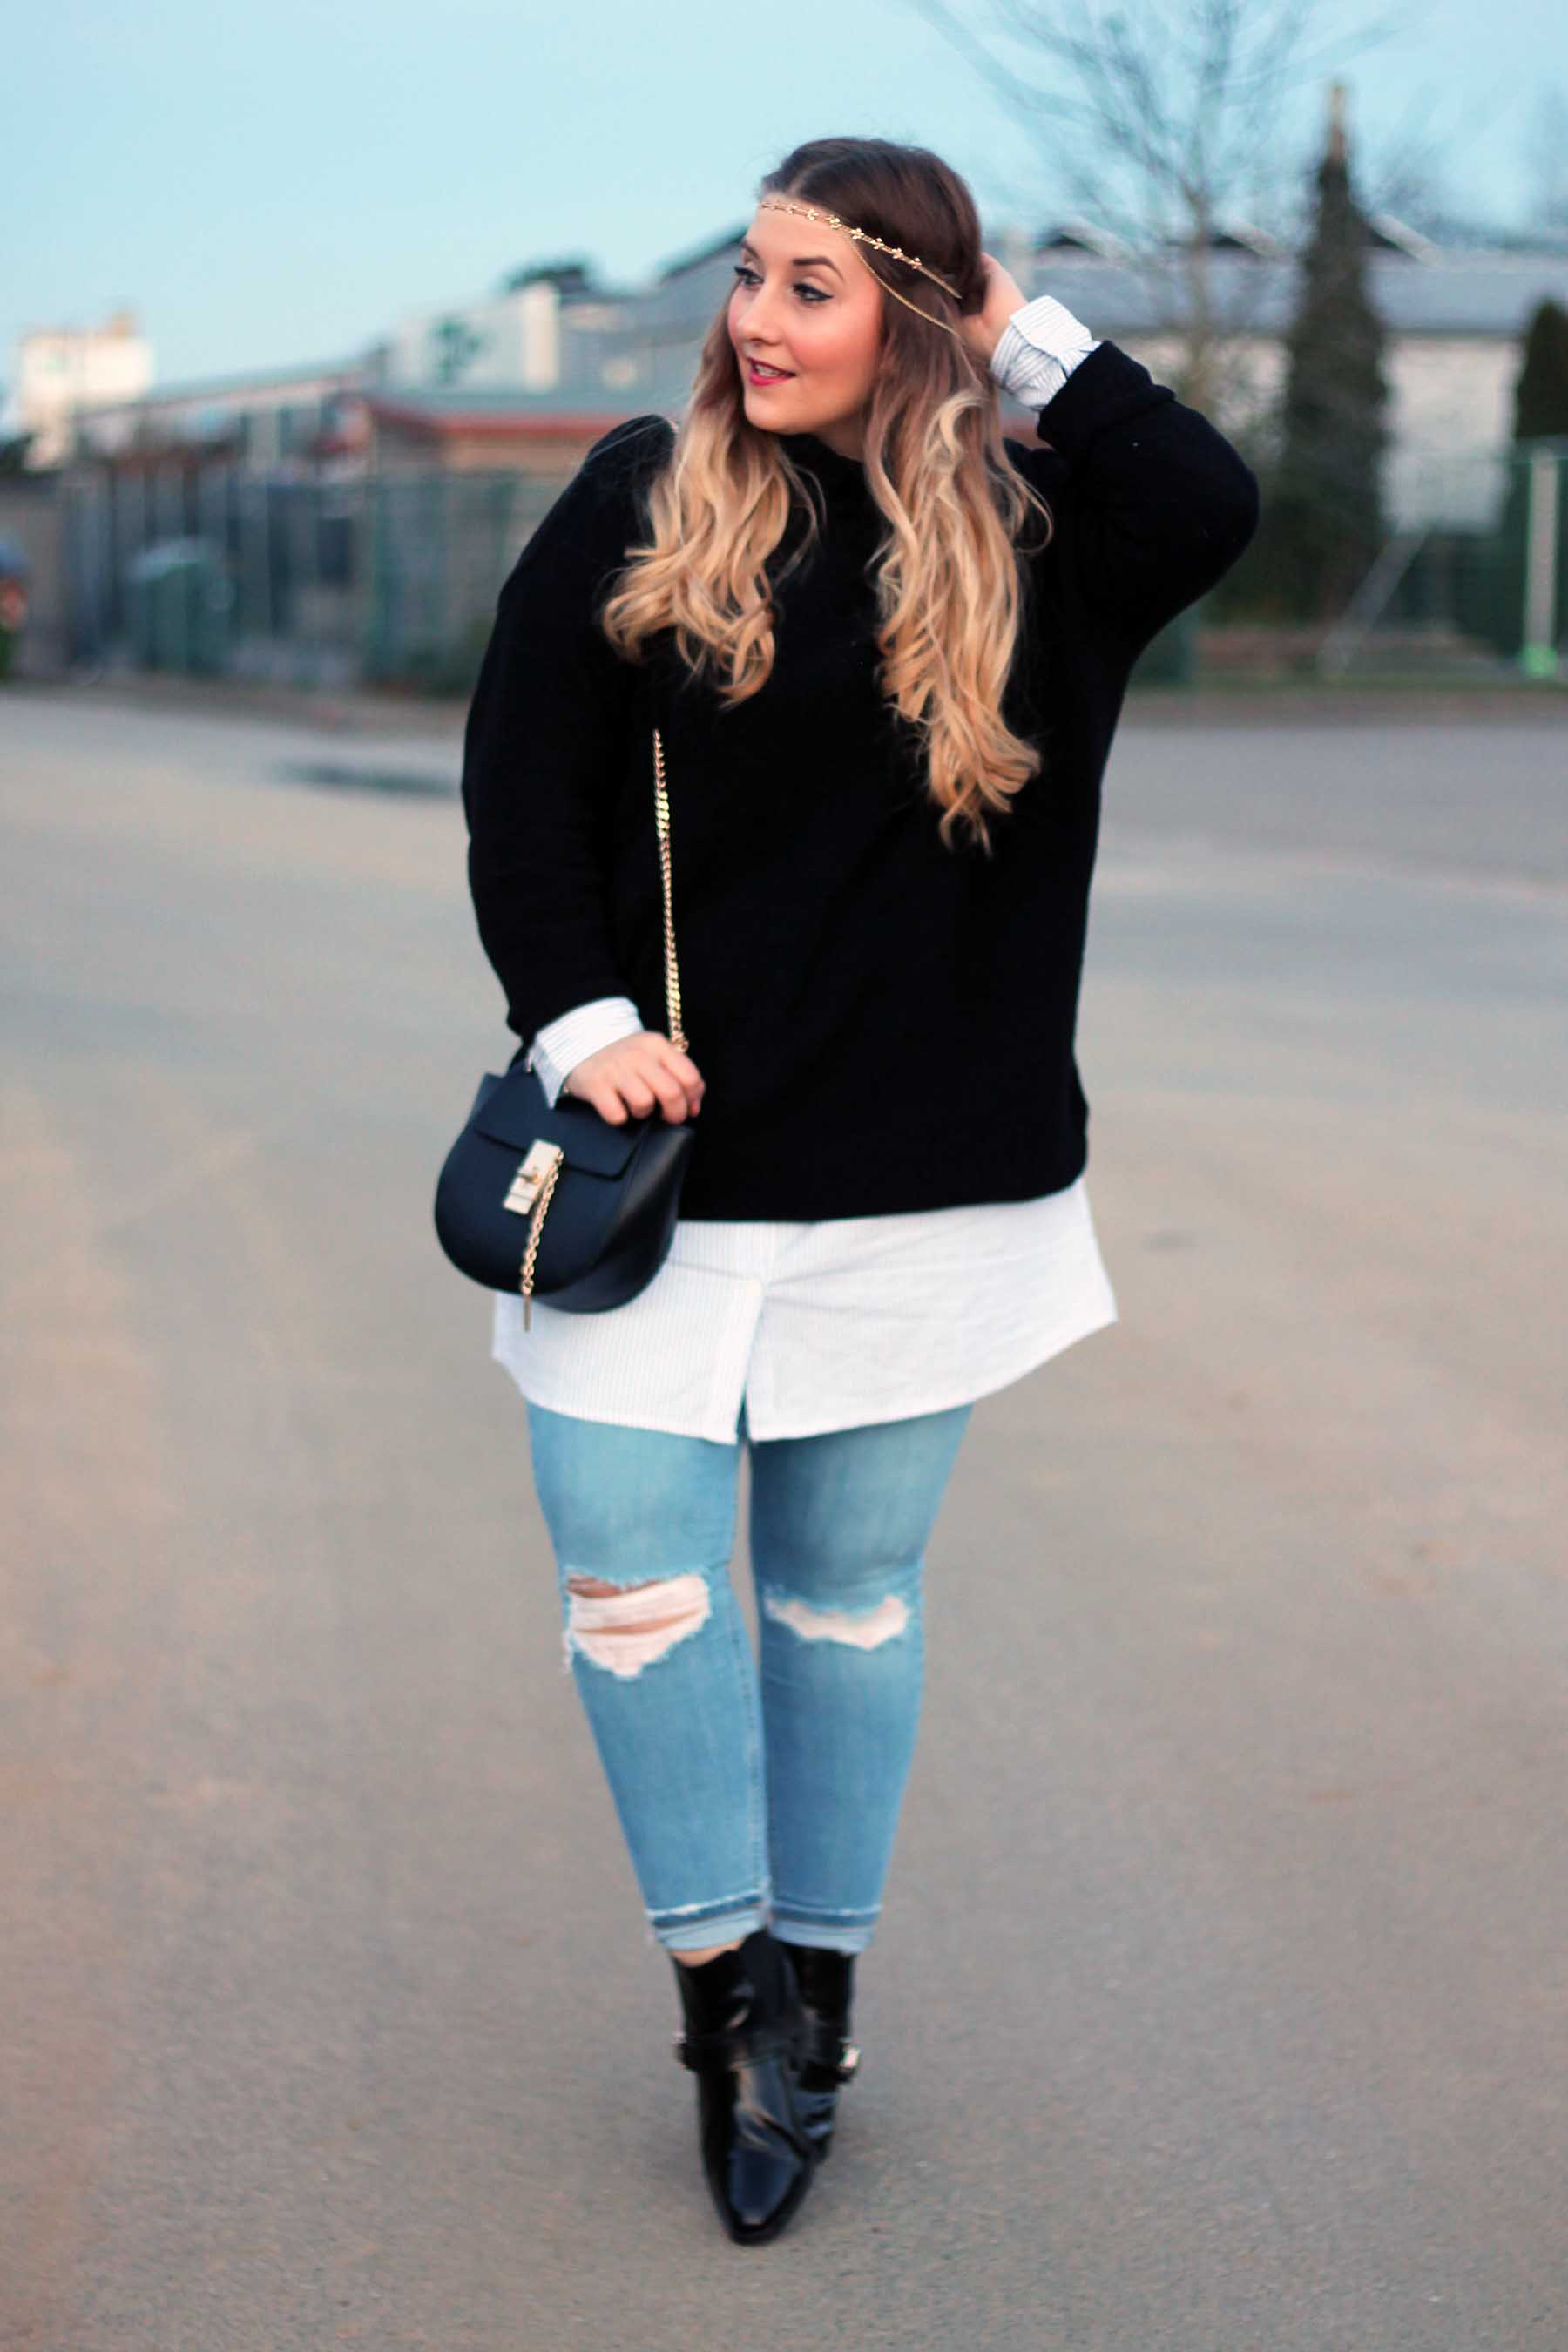 outfit-modeblog-fashionblog-style-look-ostern-jeans-stiefeletten-asos